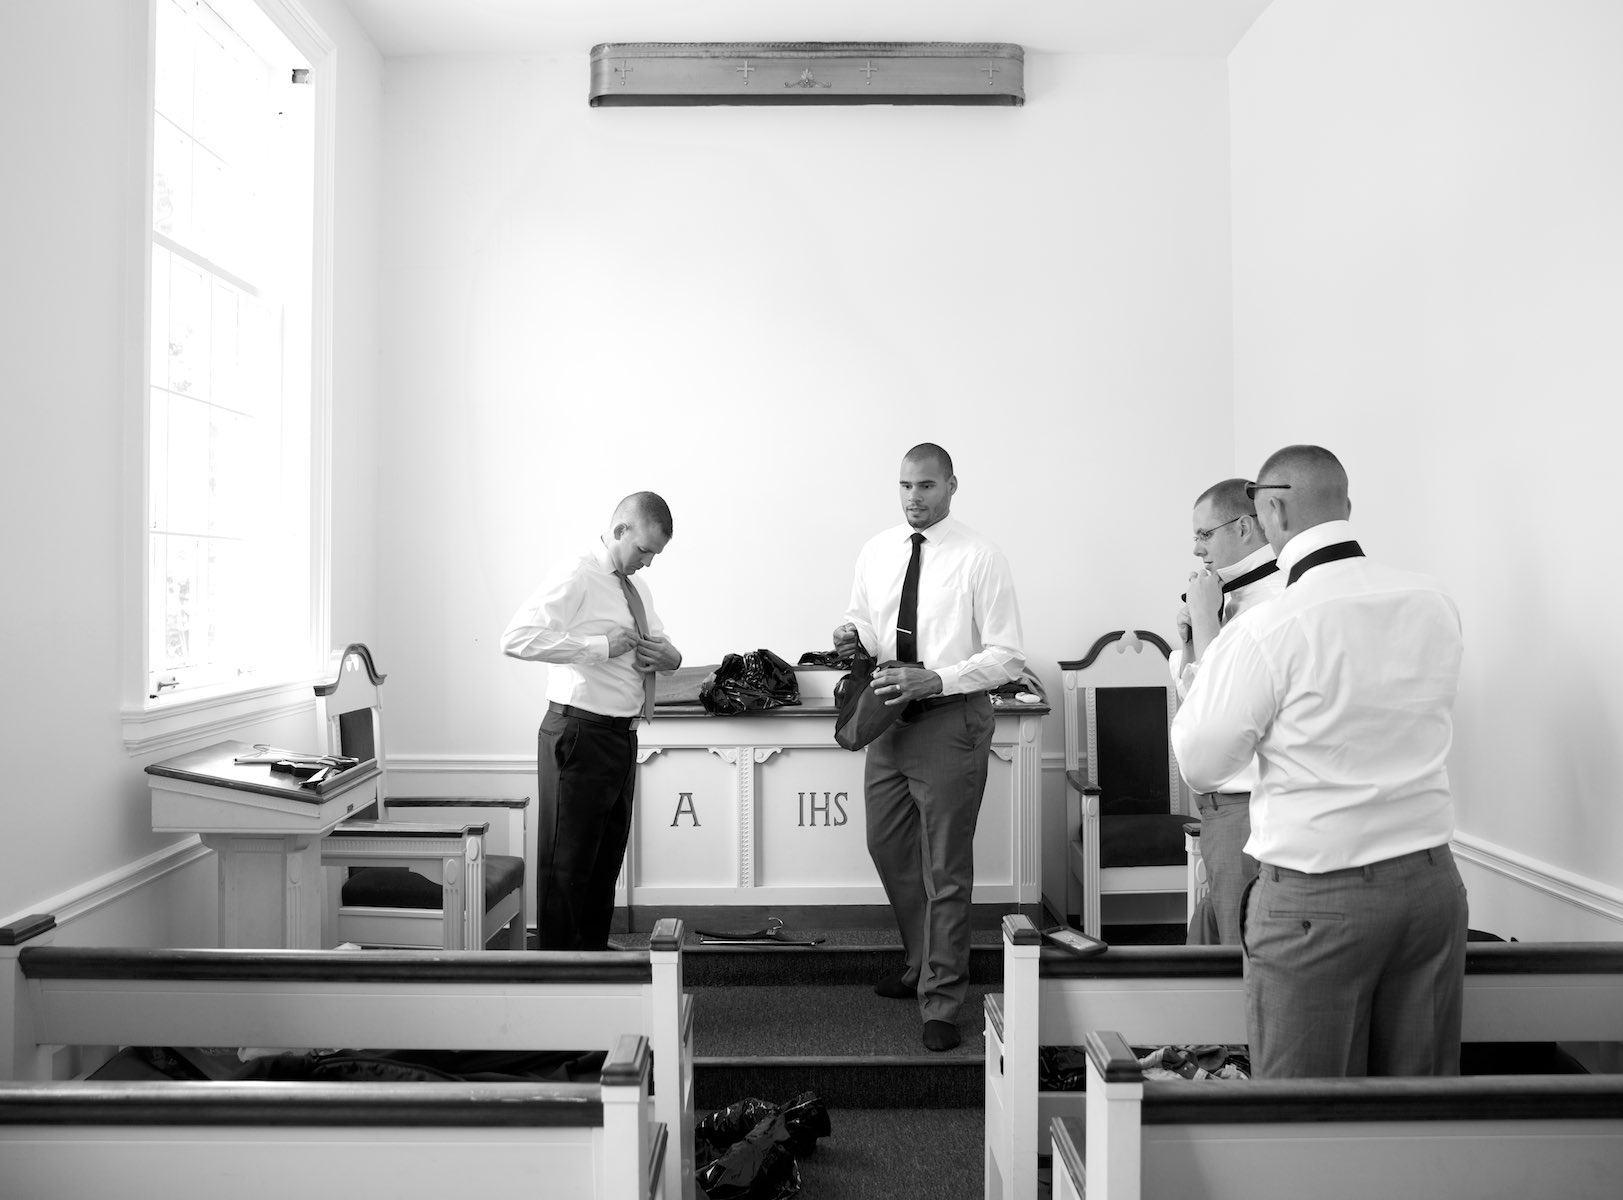 Jeremy and his groomsmen get dressed in the small chapel at MacMurray College's Annie Merner Chapel in Jacksonville, Illinois. Wedding photography by Steve & Tiffany Warmowski.